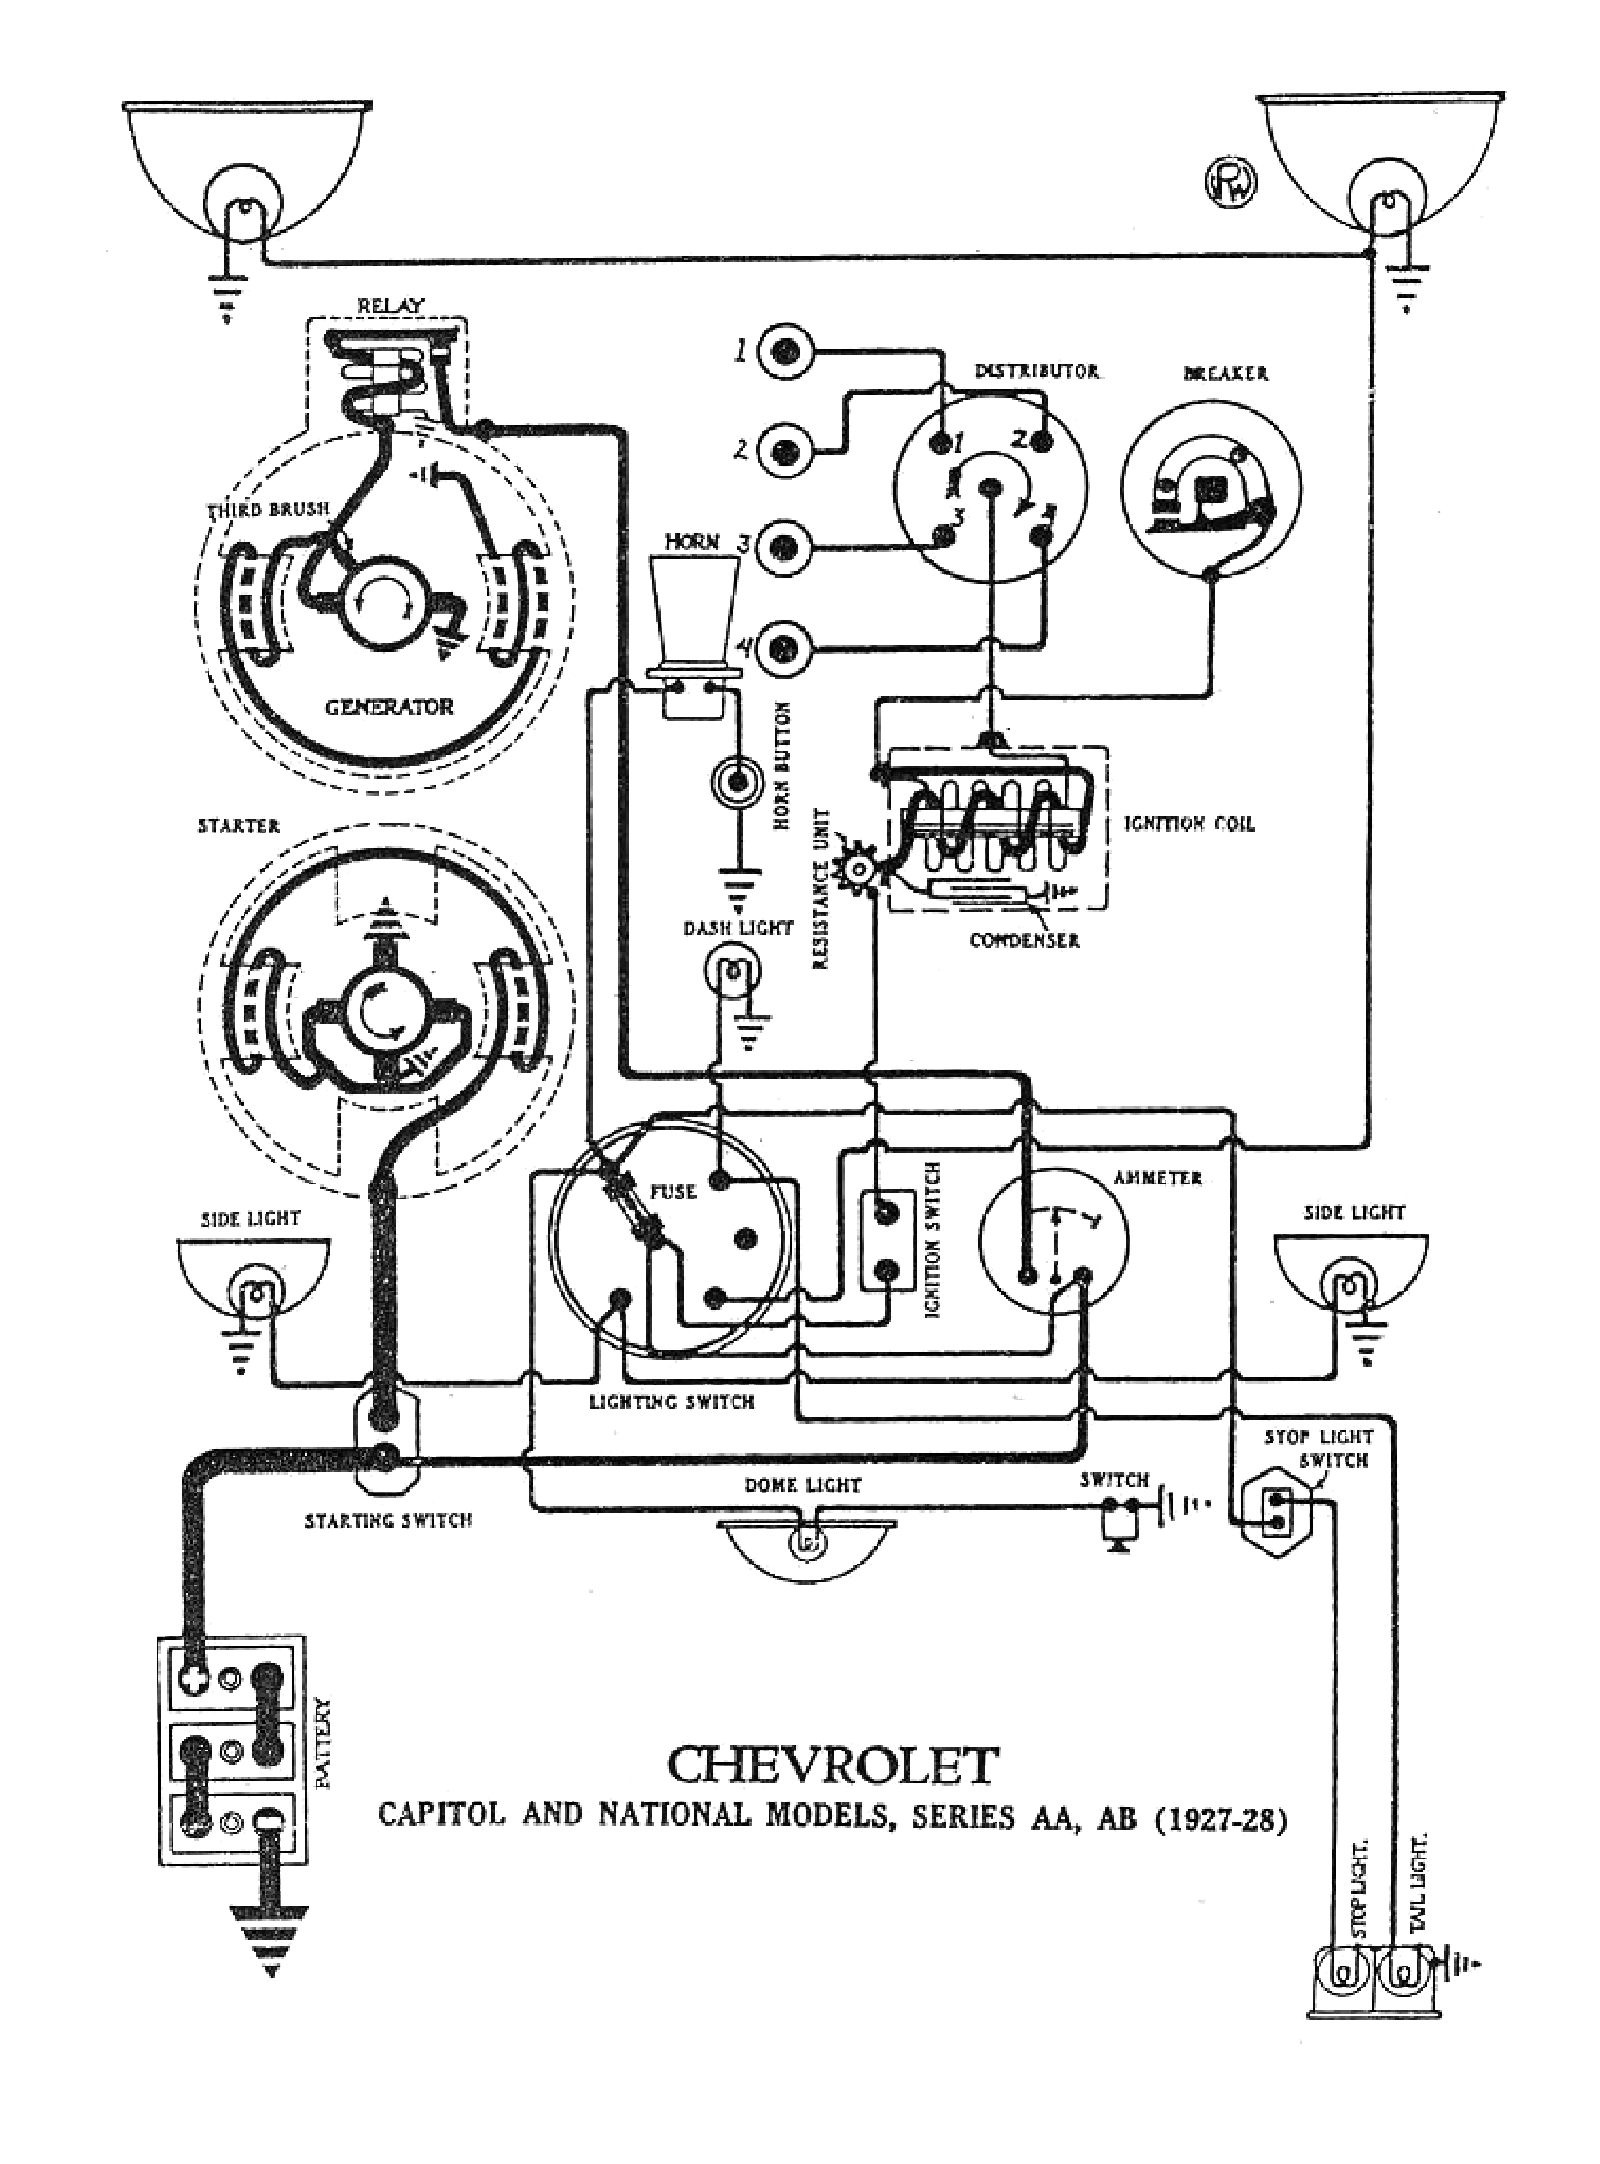 1946 Dodge Truck Wiring Diagram, 1946, Free Engine Image